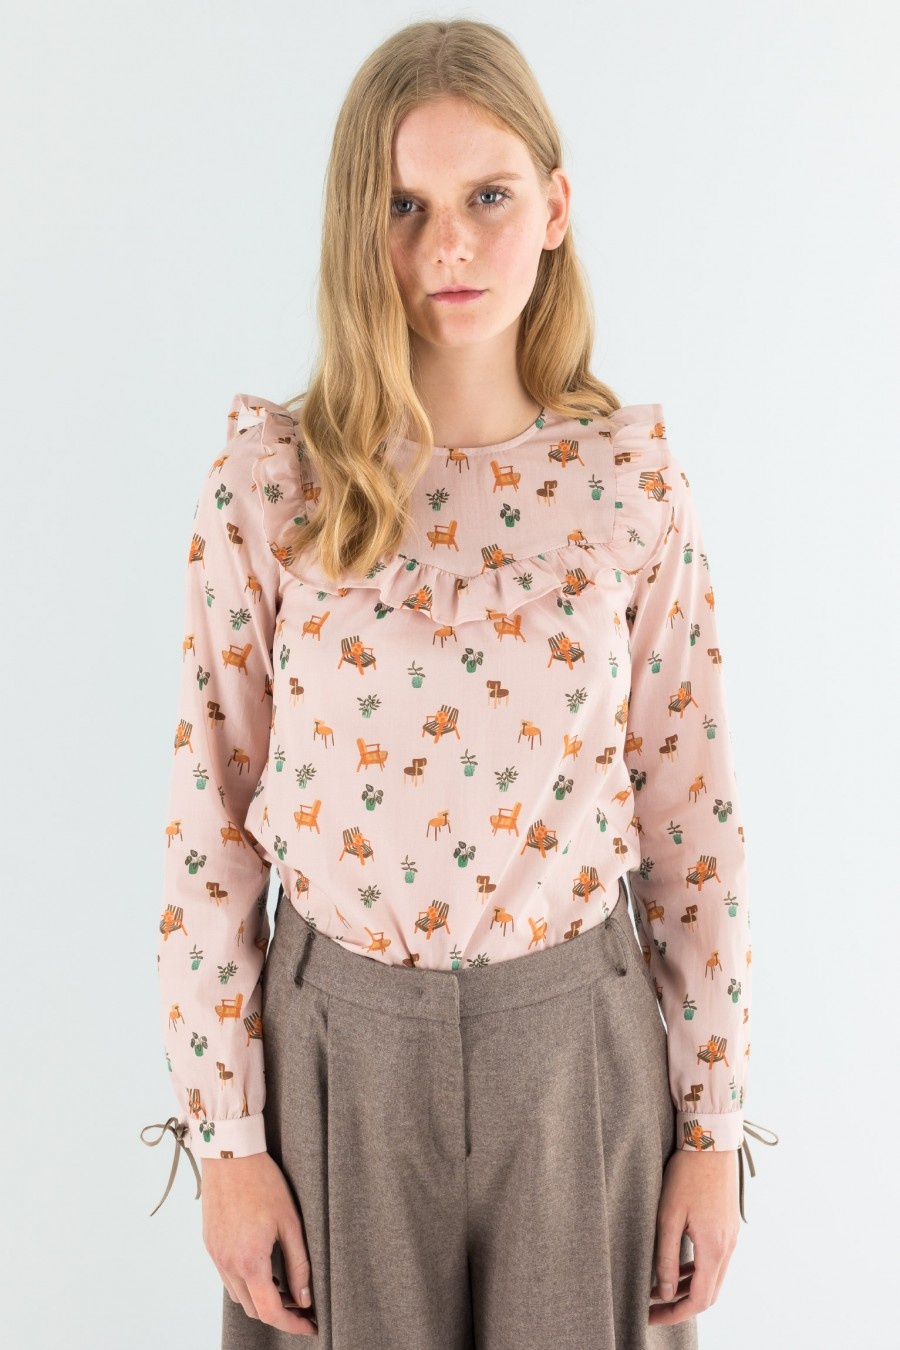 Popeline shirt with tiny chairs